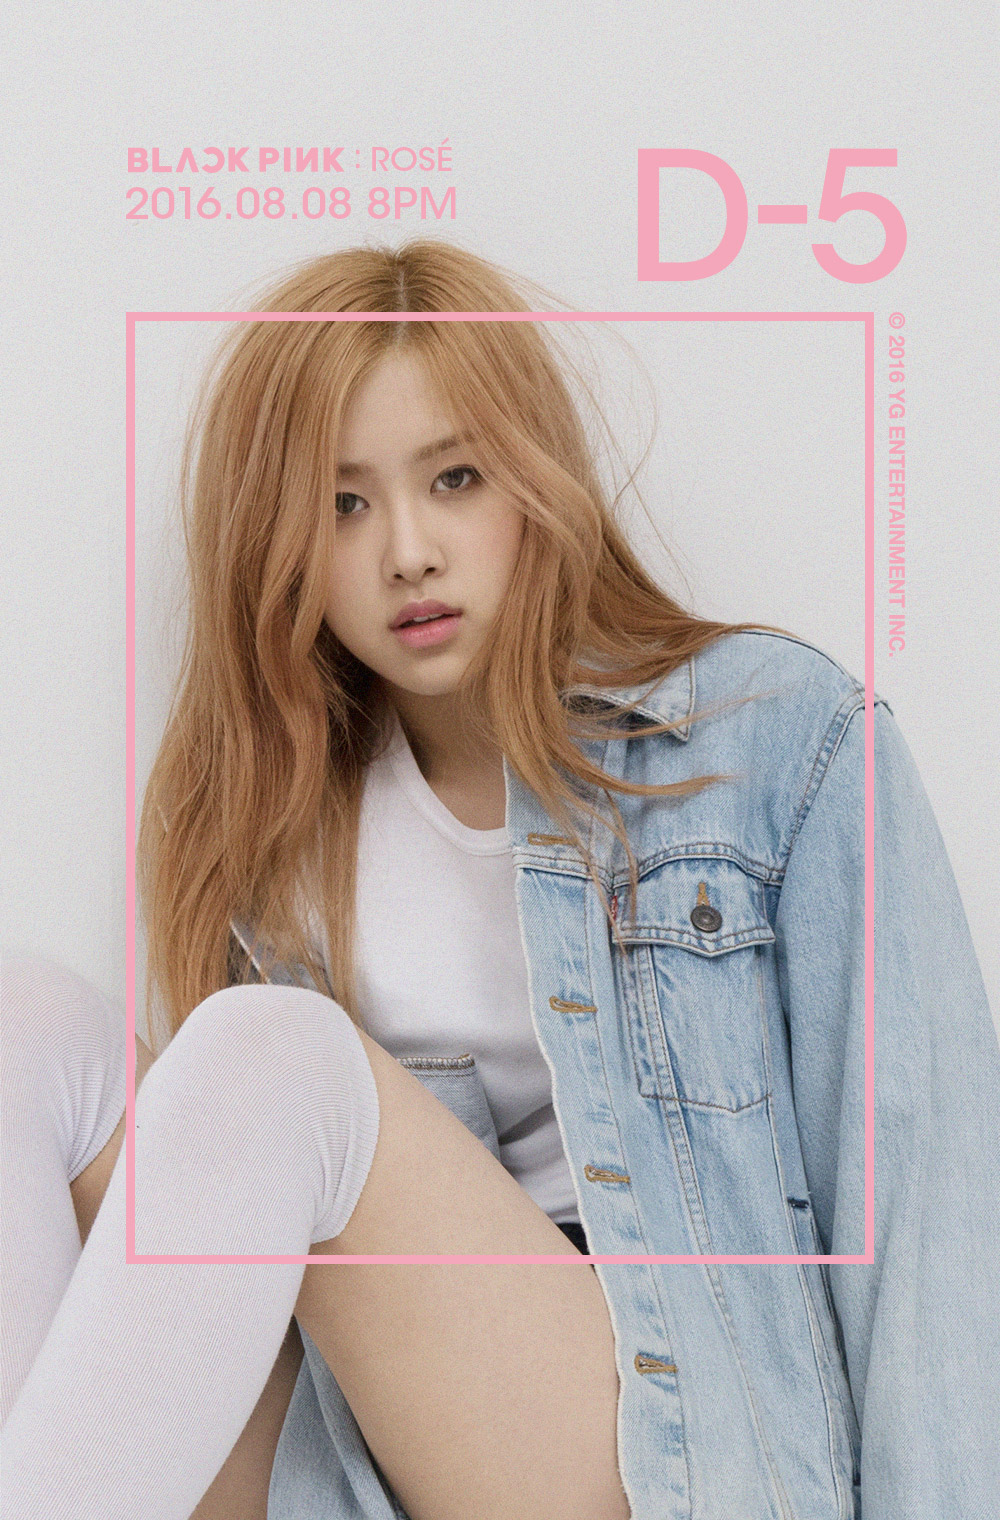 BLACKPINK Reveals First Teaser For Rosé